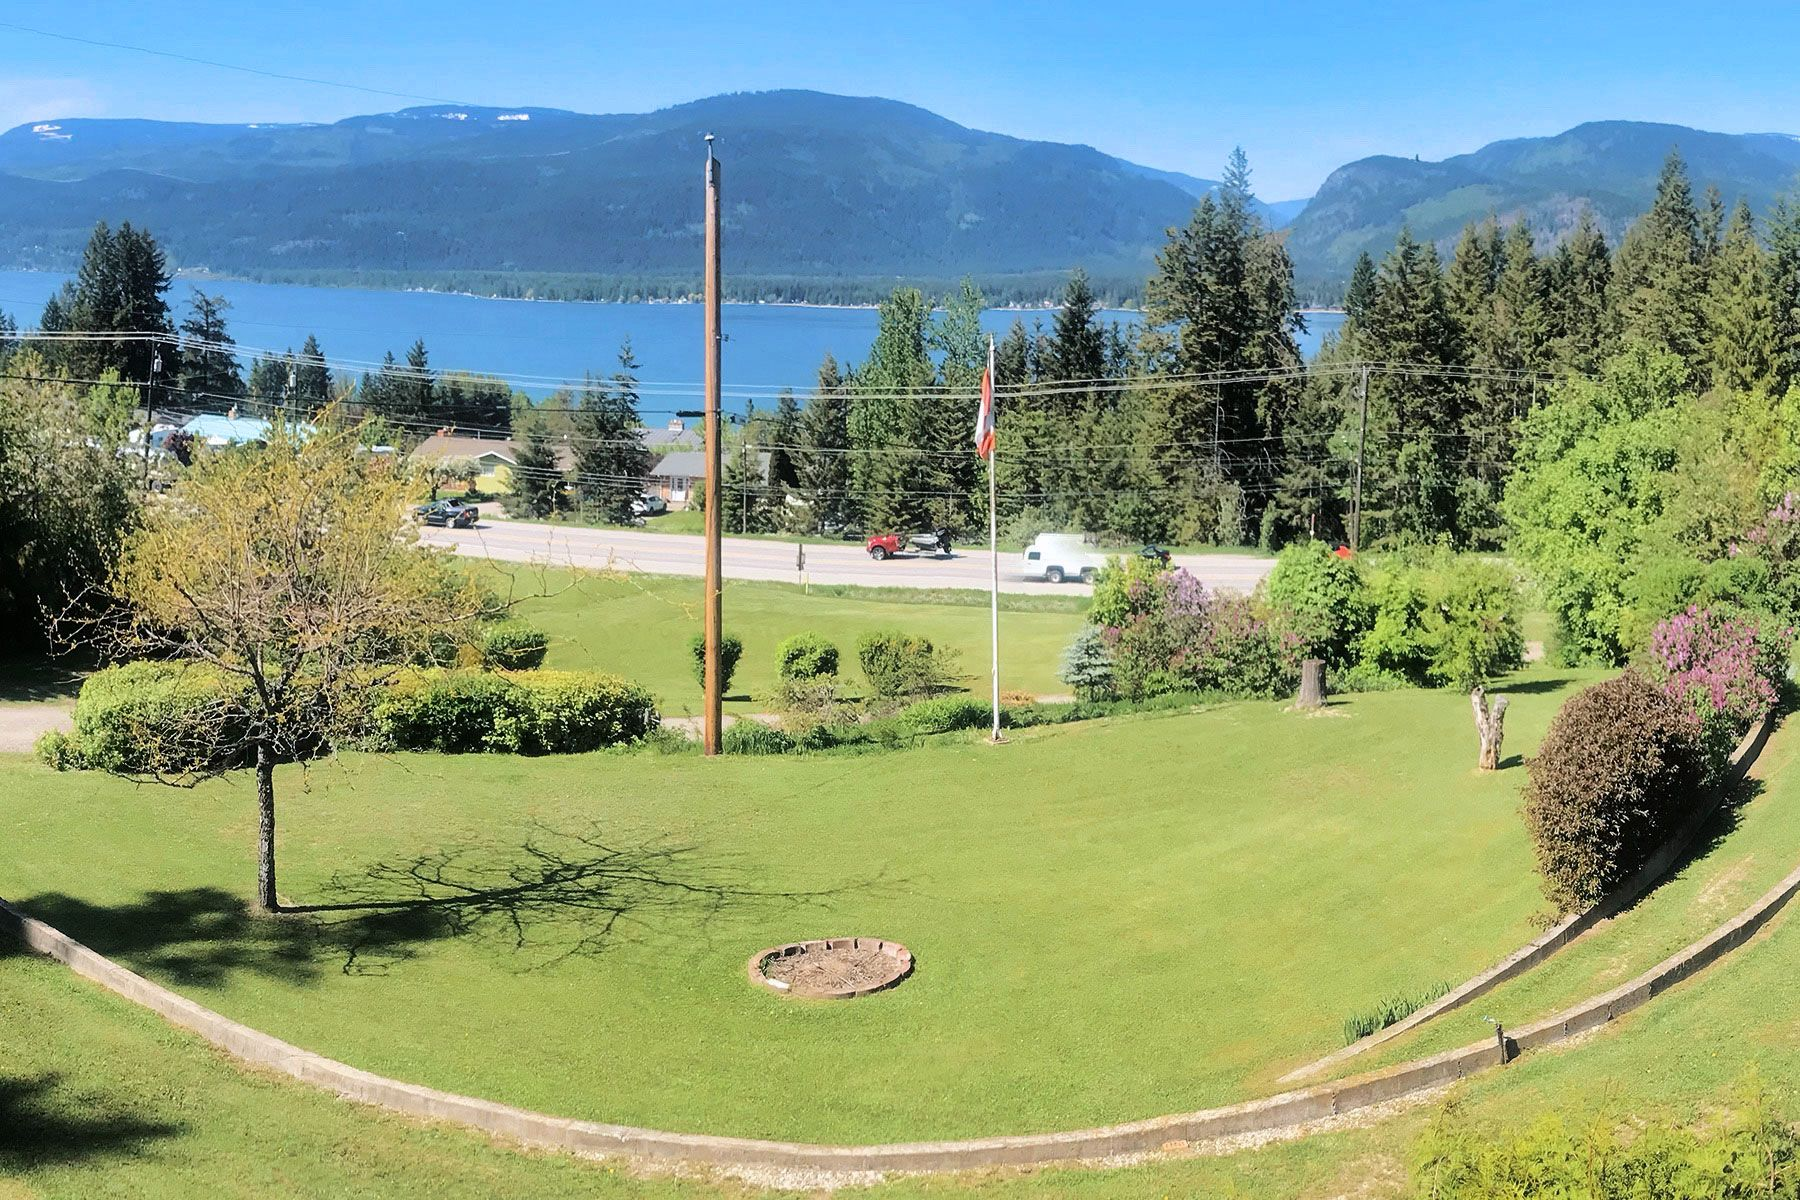 Photo 7: Photos: 1350 Trans Canada Highway in Sorrento: House for sale : MLS®# 10225818